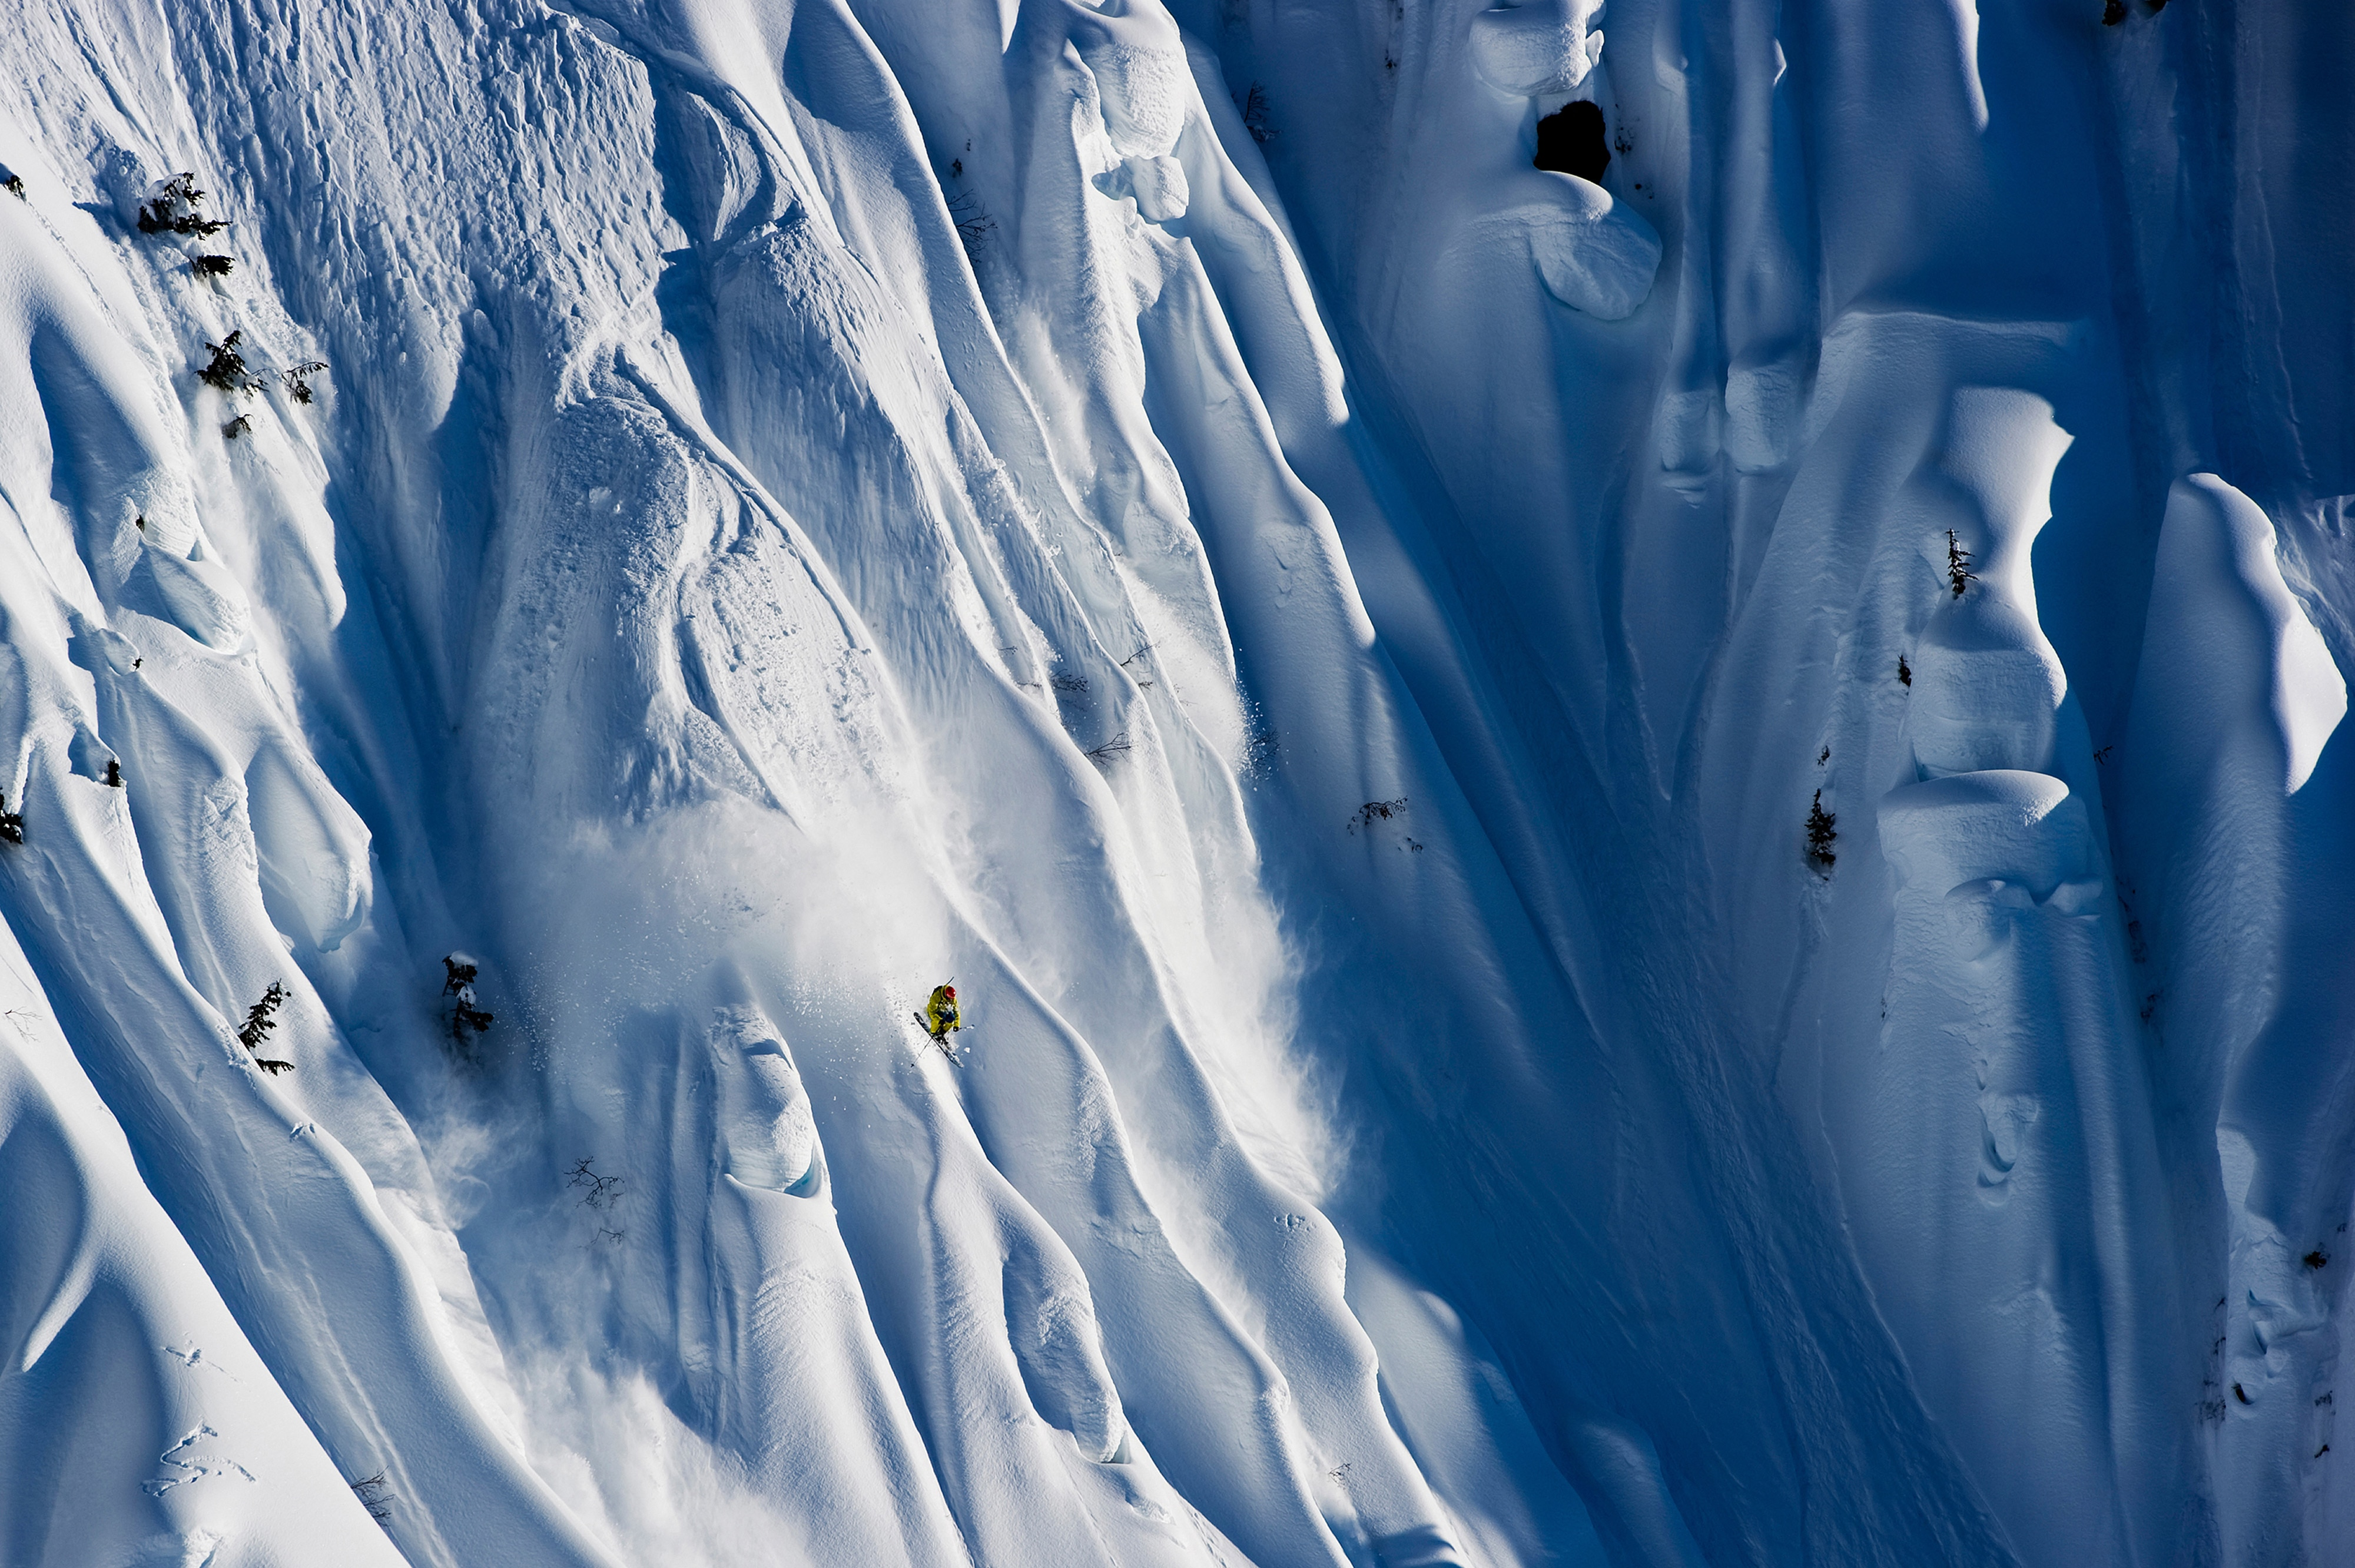 Mattias Fredriksson, Category finalist 2013: Illumination